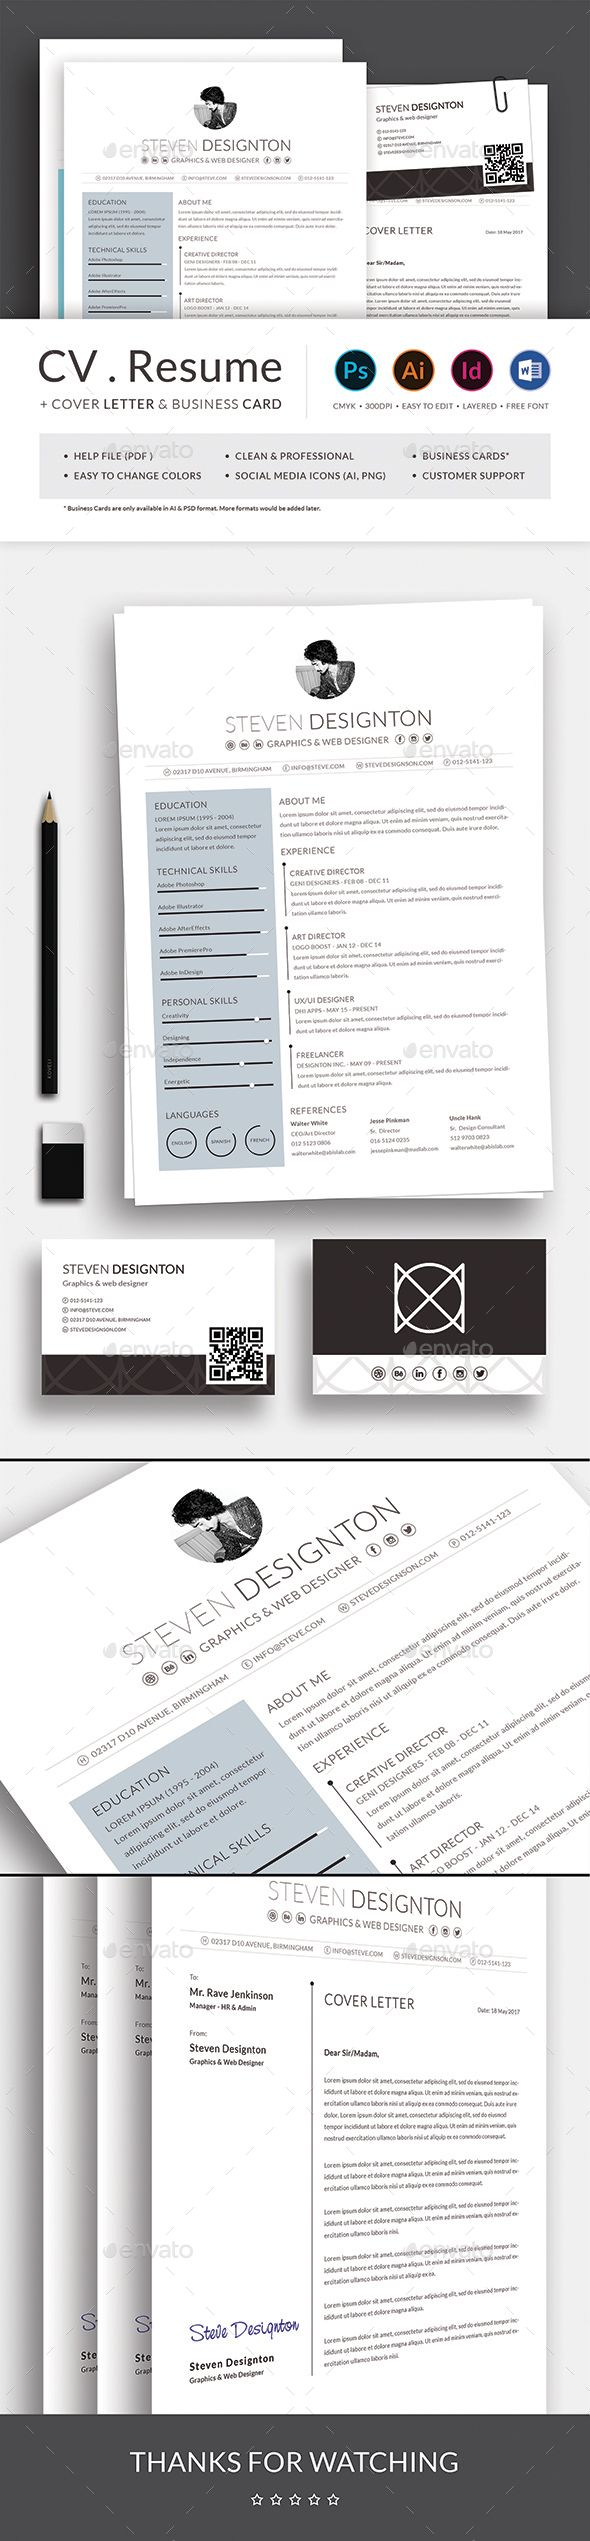 Resume Cv With Business Card Business Card Template Psd Resume Cv Resume Cover Letter Template